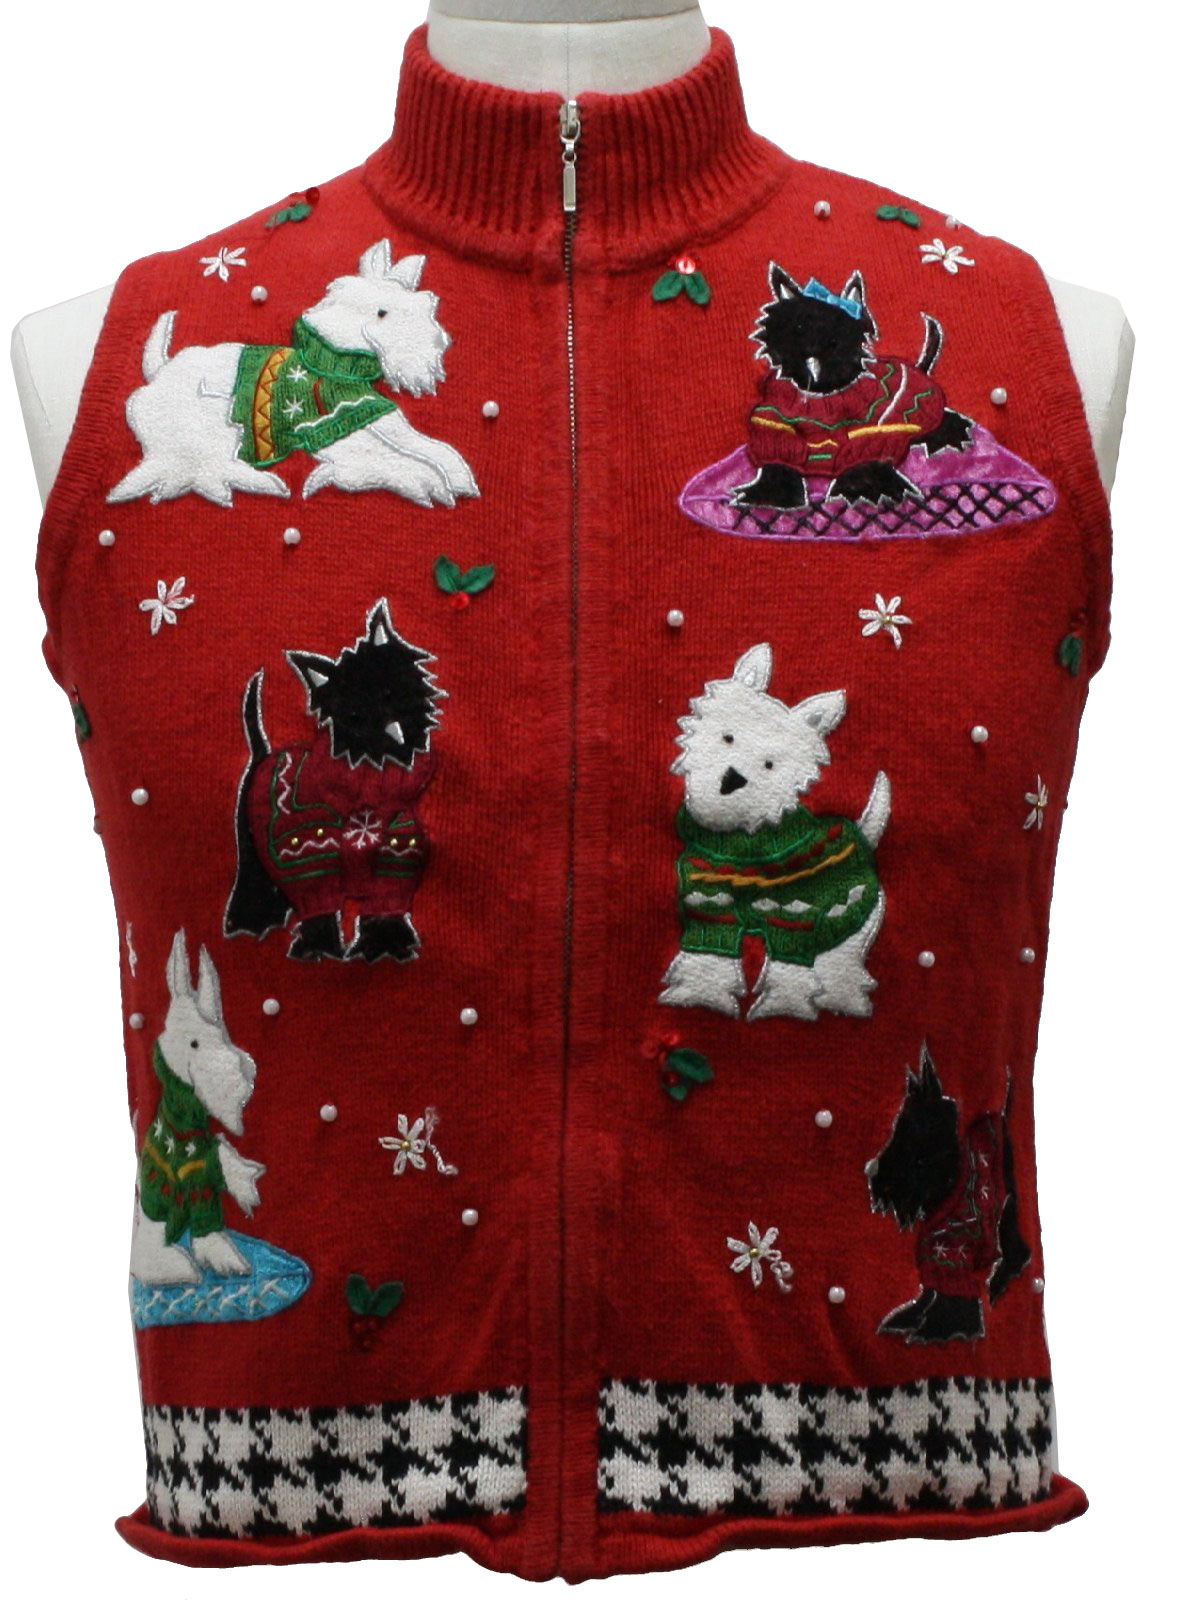 Womens Ugly Christmas Sweater Vest: -Studio- Petite Womens slight ...